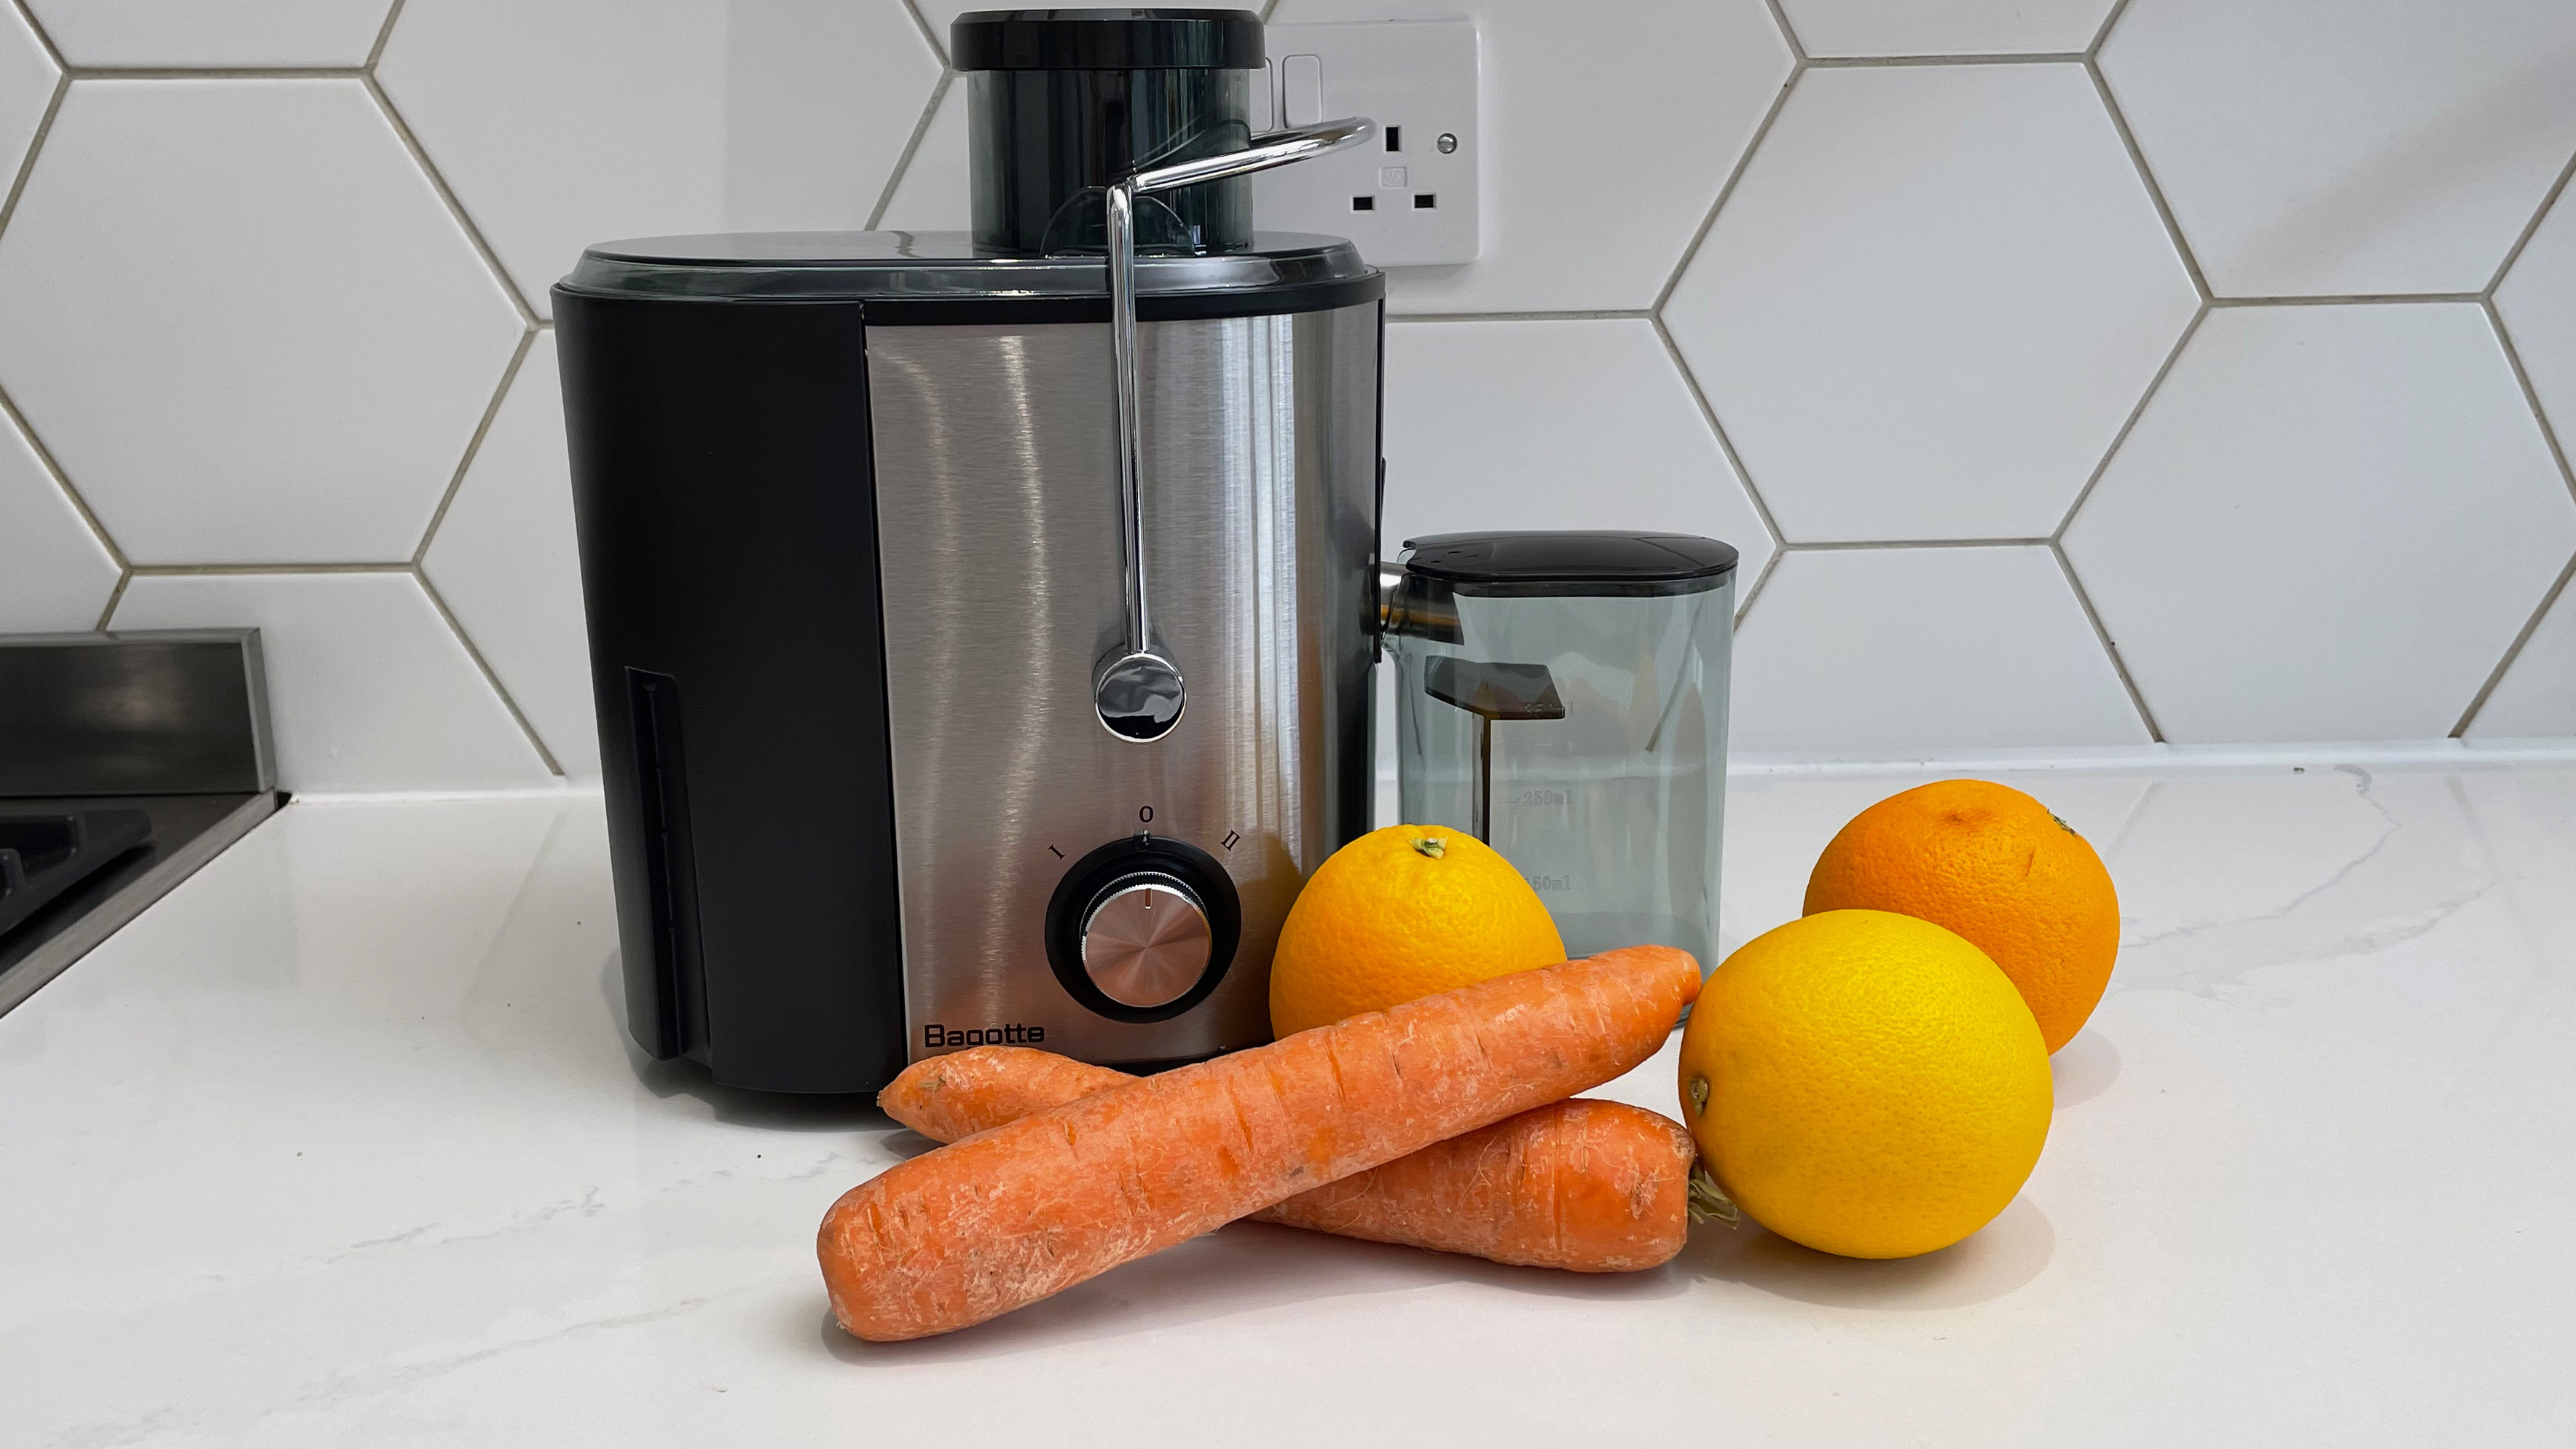 The Bagotte DB-001 juicer on a kitchen countertop next to some oranges and carrots ready to be juiced